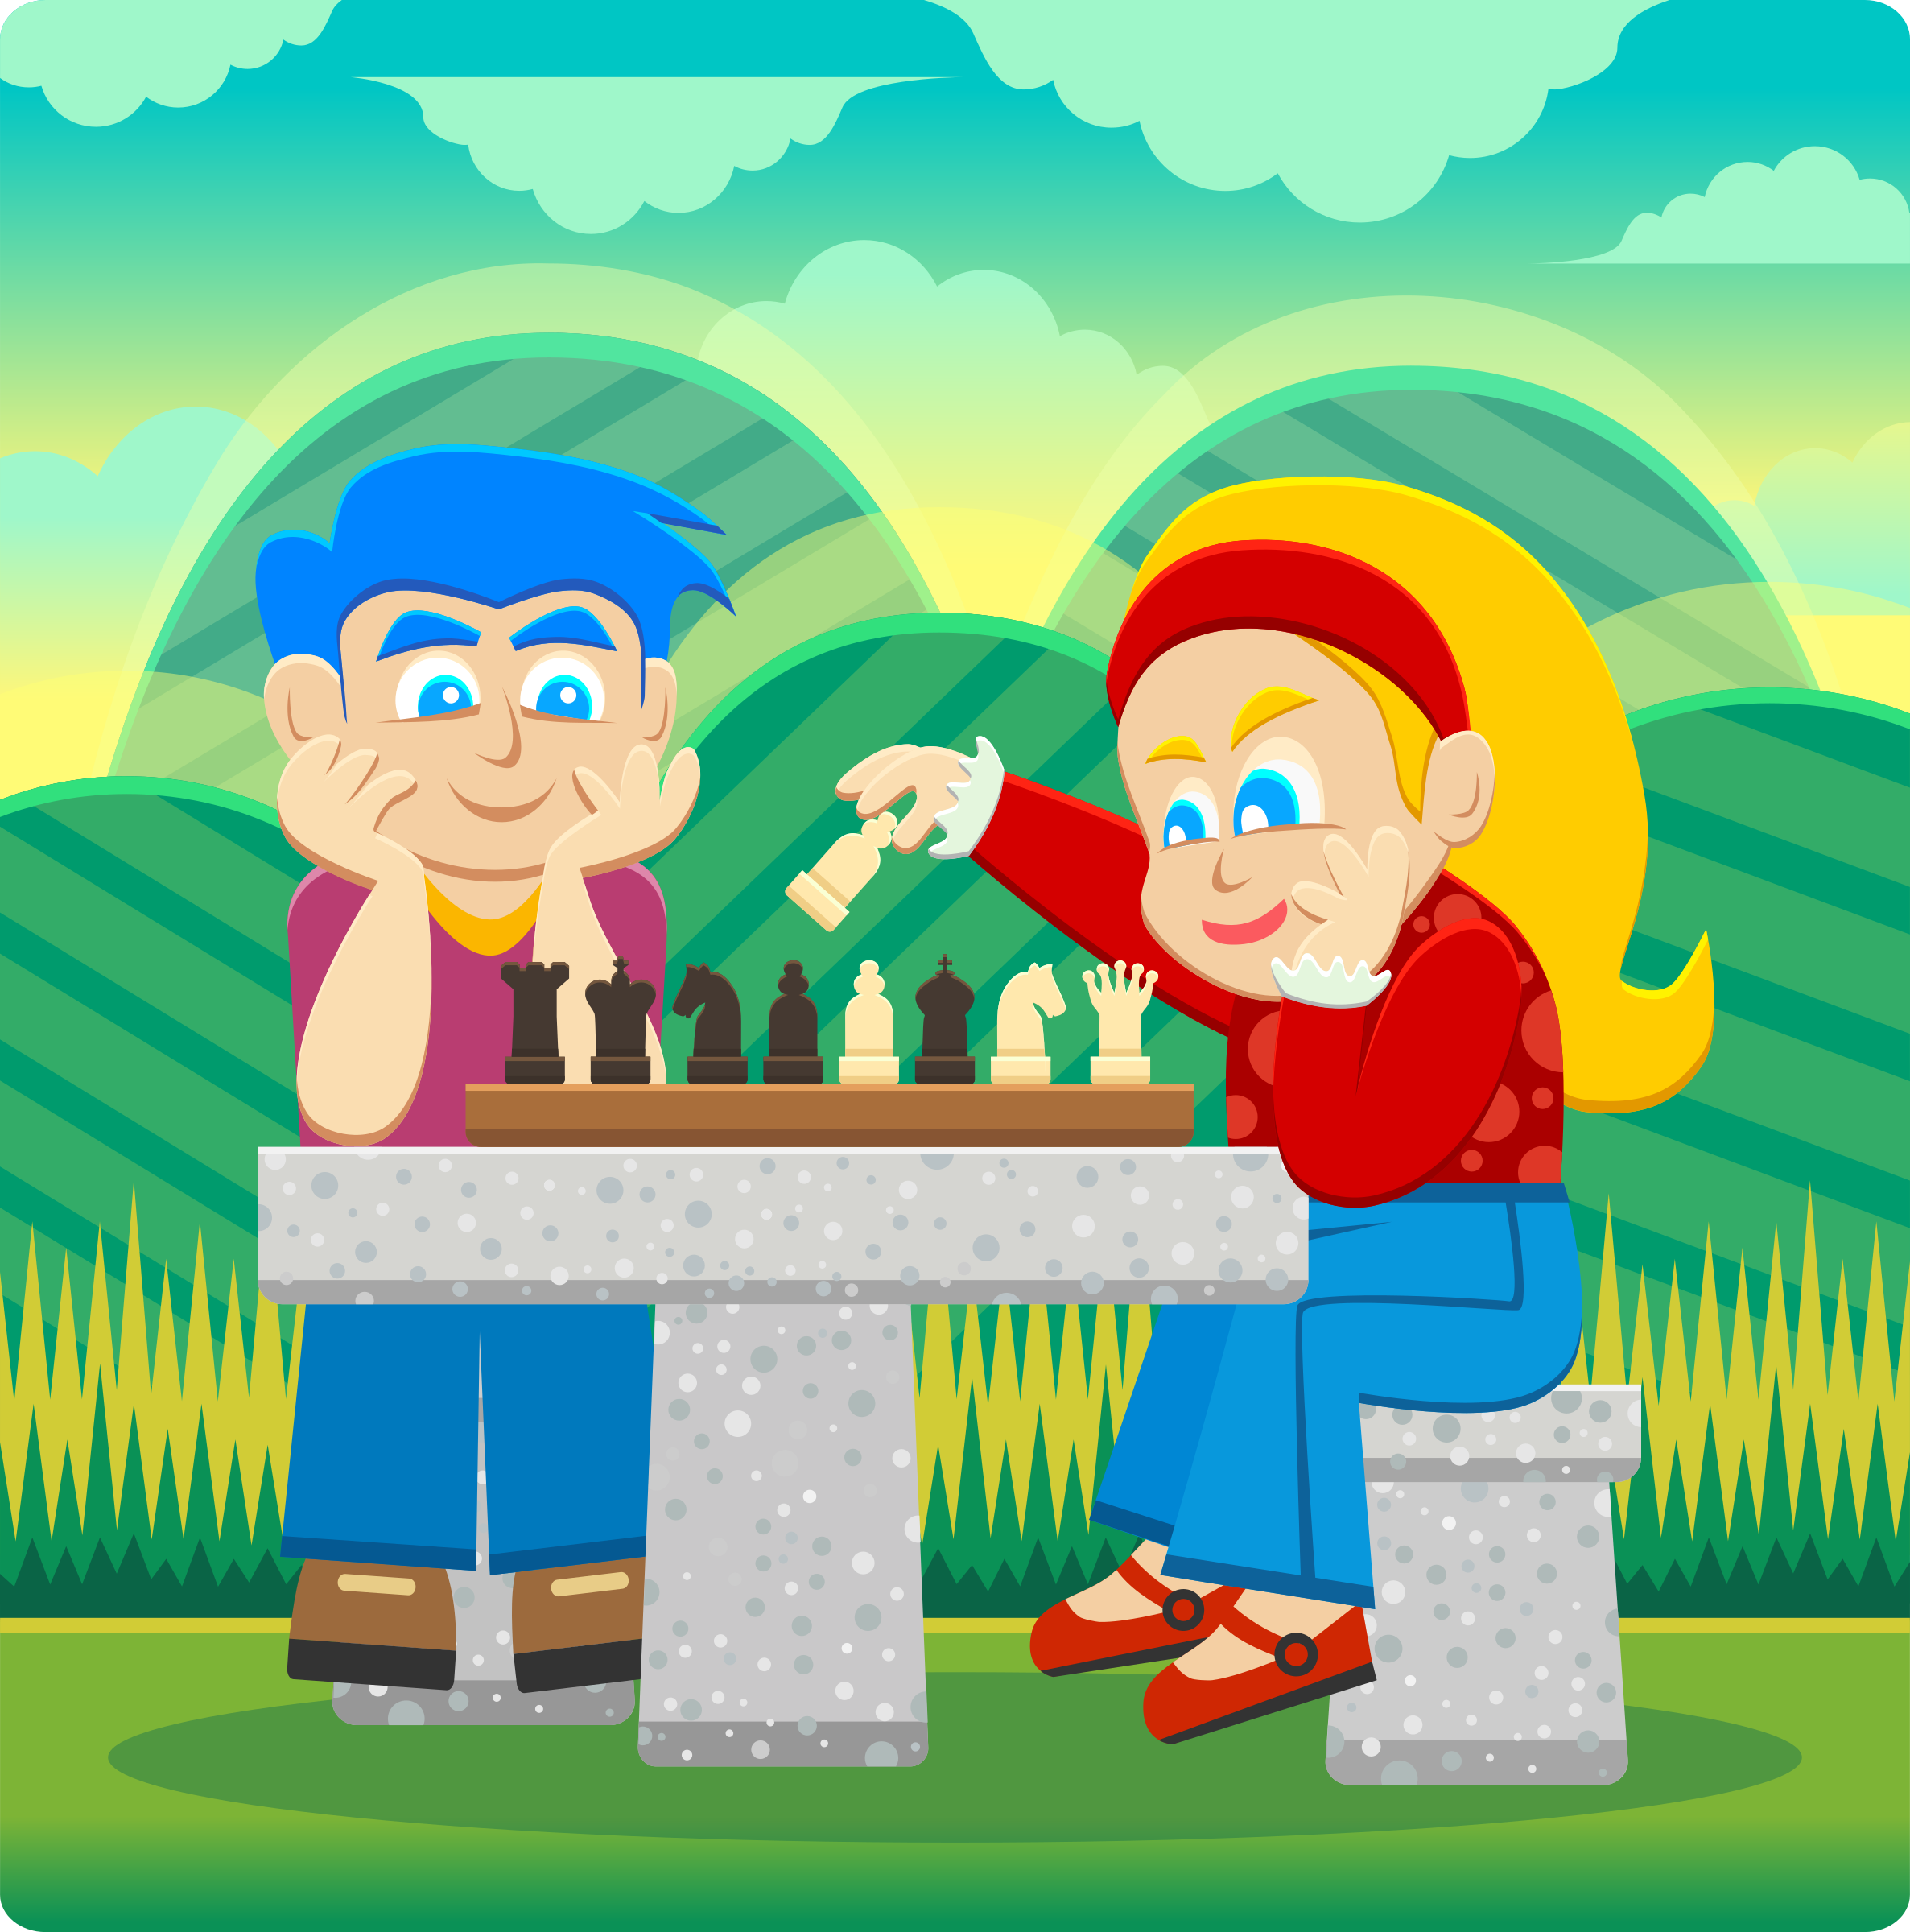 Kids Playing Chess by Viscious-Speed